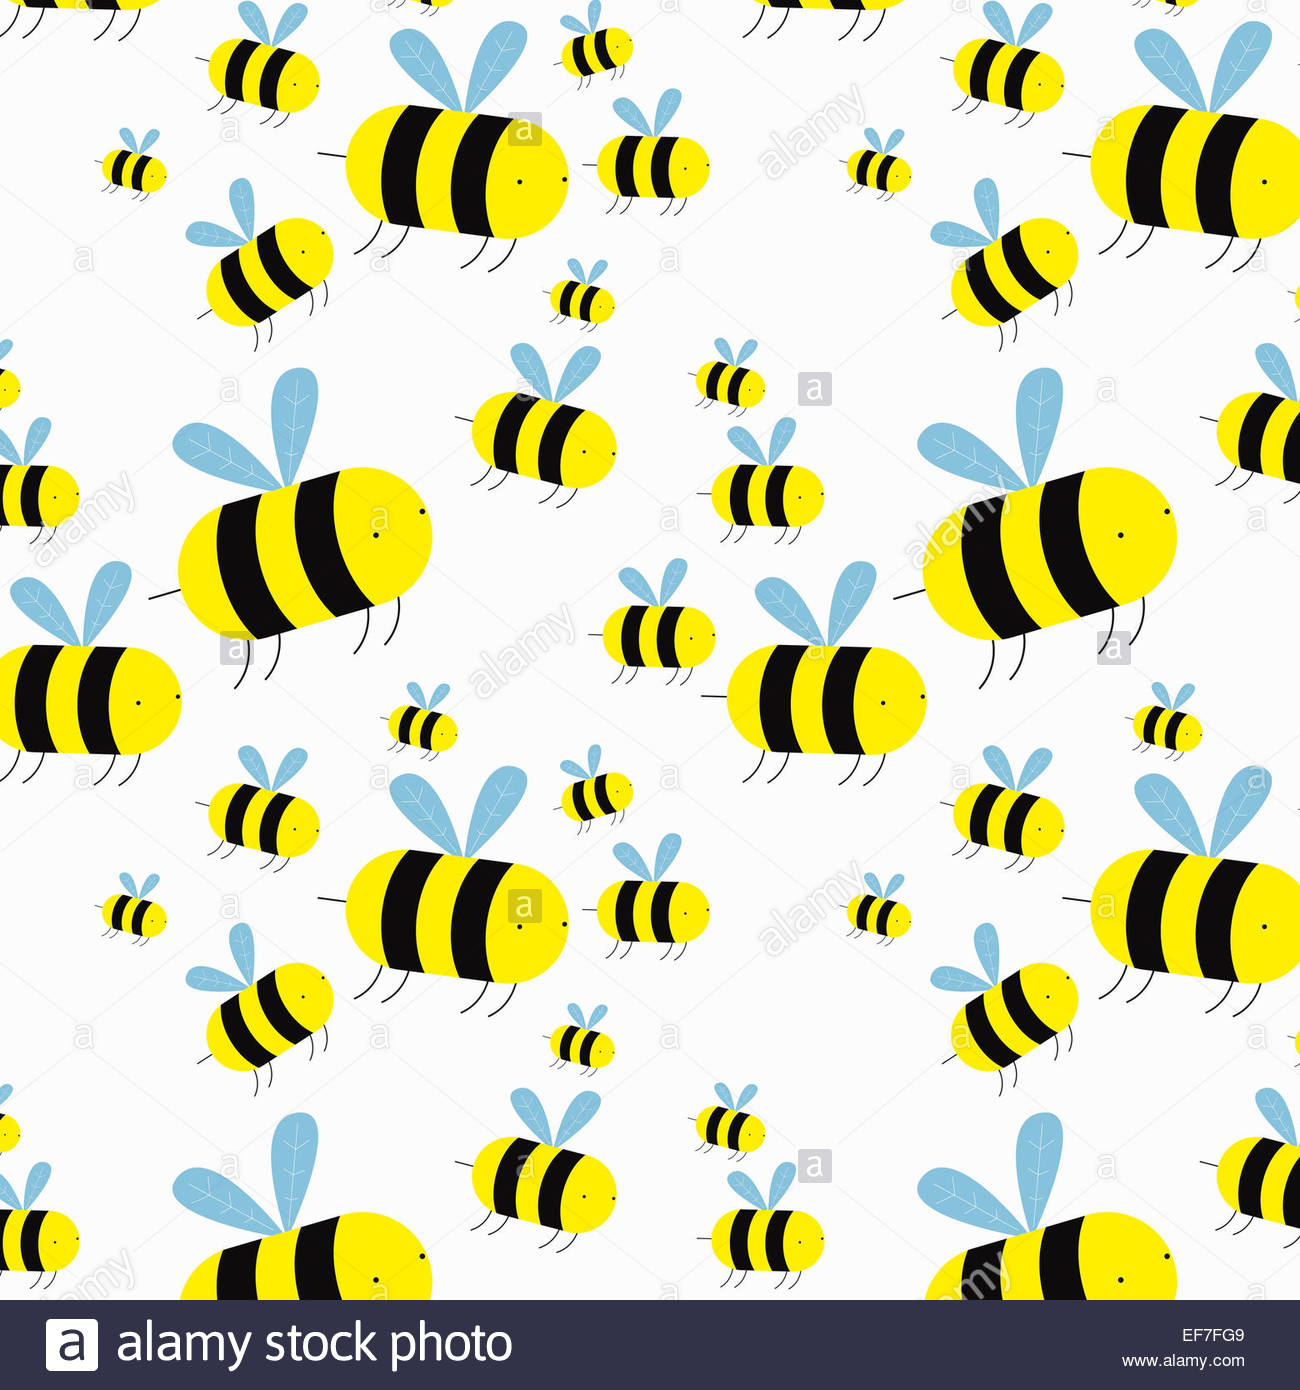 swarm of cartoon bees stock photo royalty free image 78227193